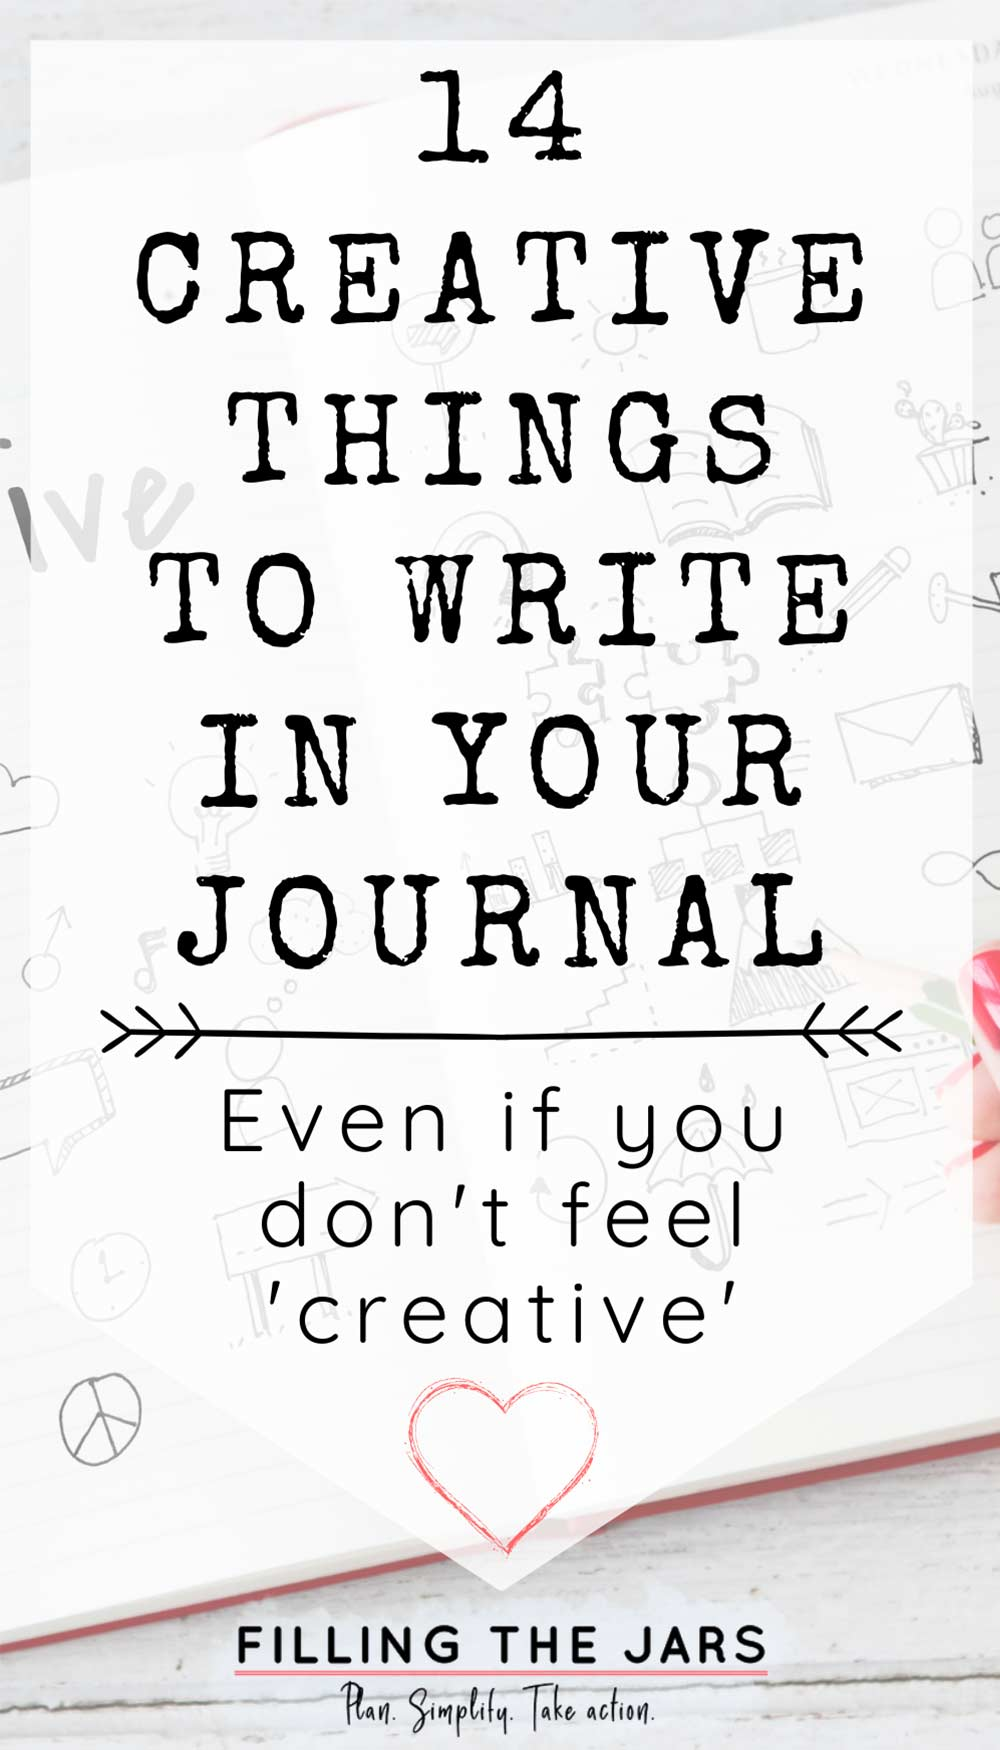 Text creative things to write in a journal on white background over image of woman making creative doodles in open journal.